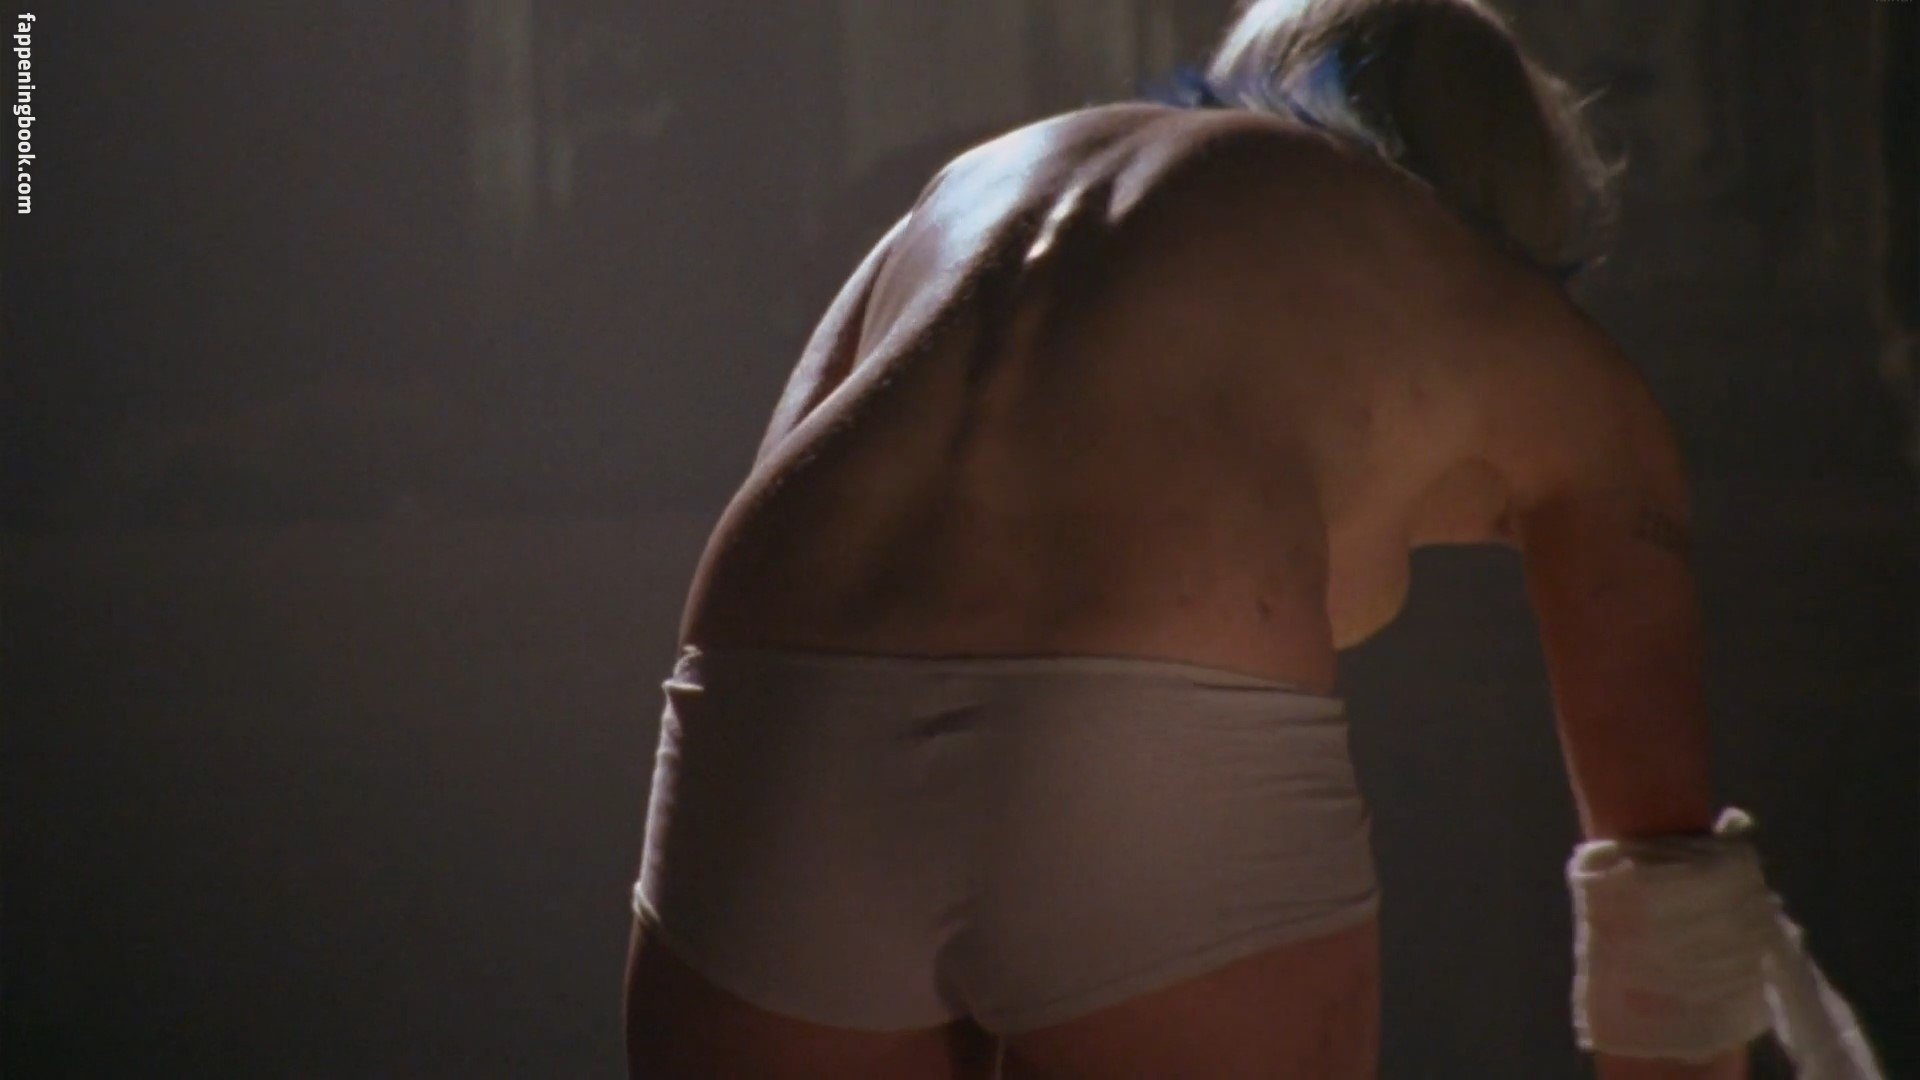 Angie Simms Nude katee sackhoff nude, sexy, the fappening, uncensored - photo